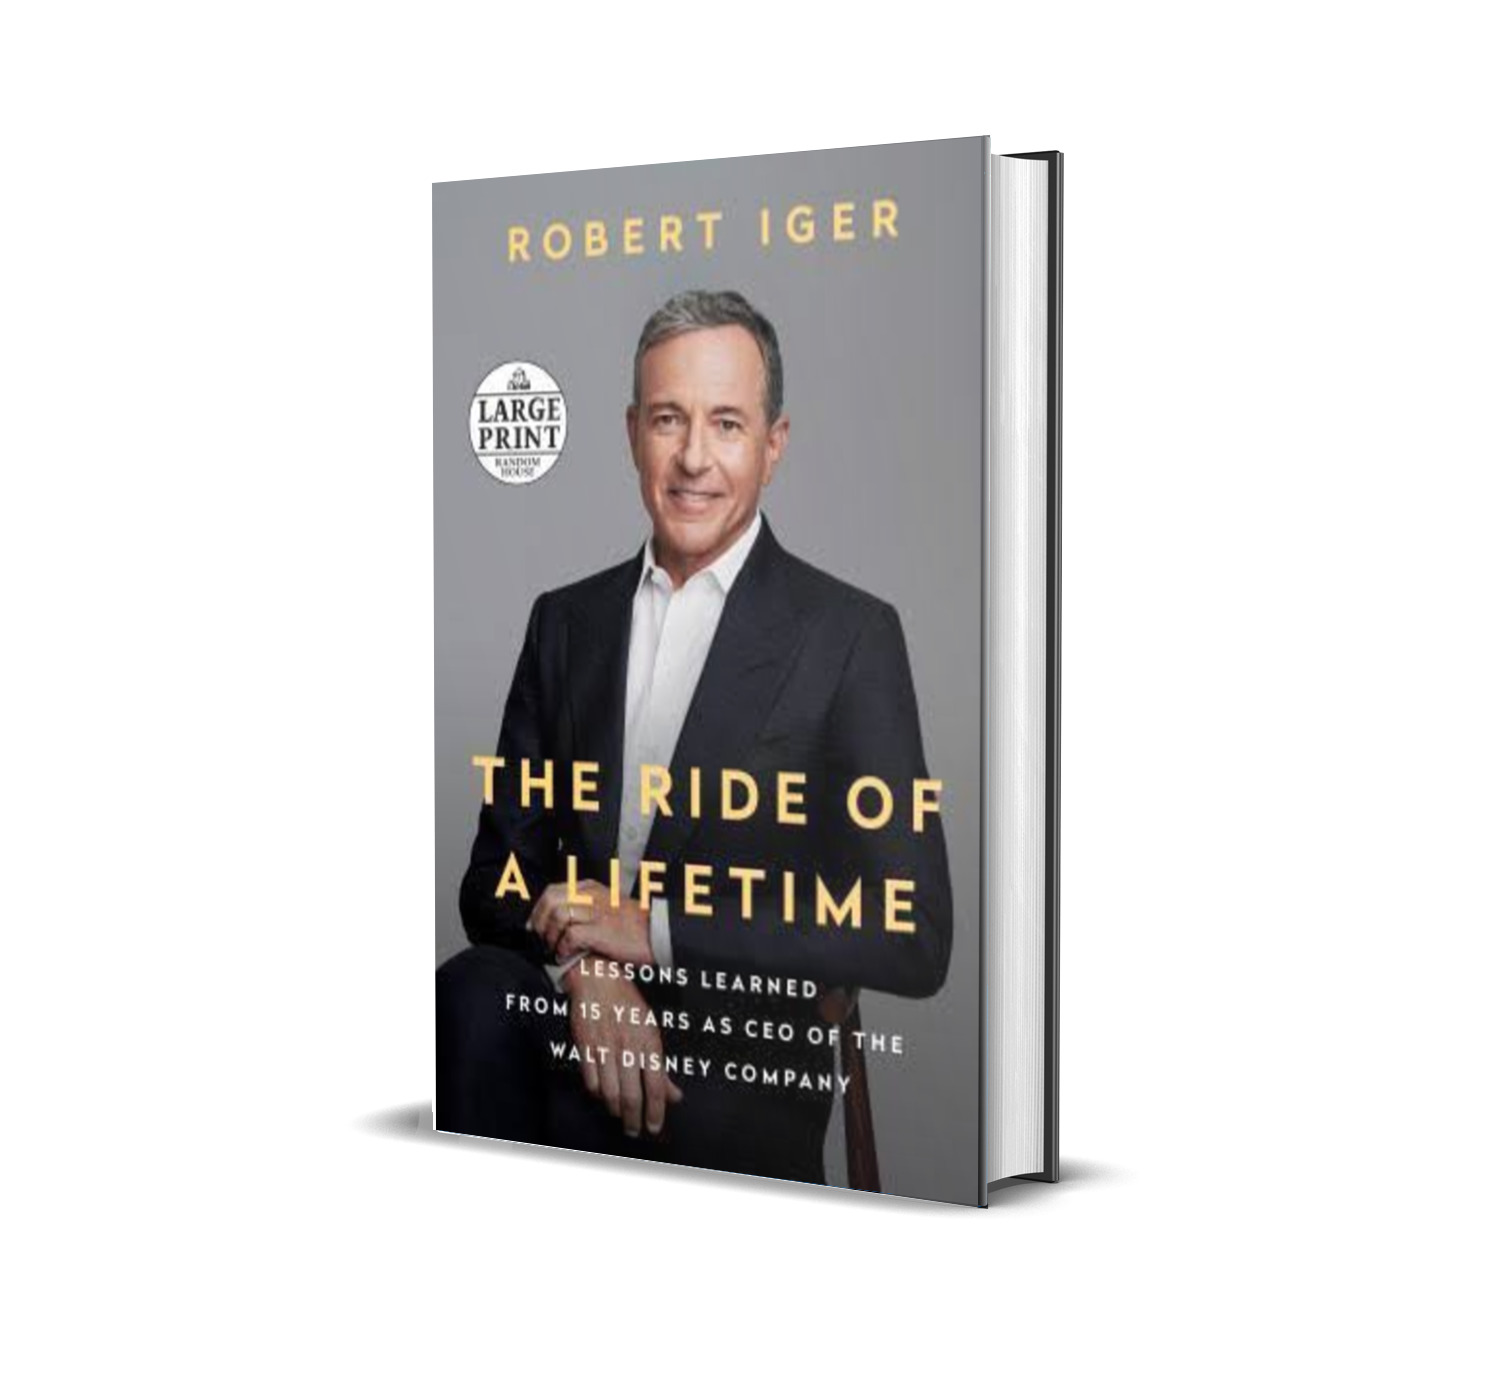 The ride of a lifetime- Robert Iger